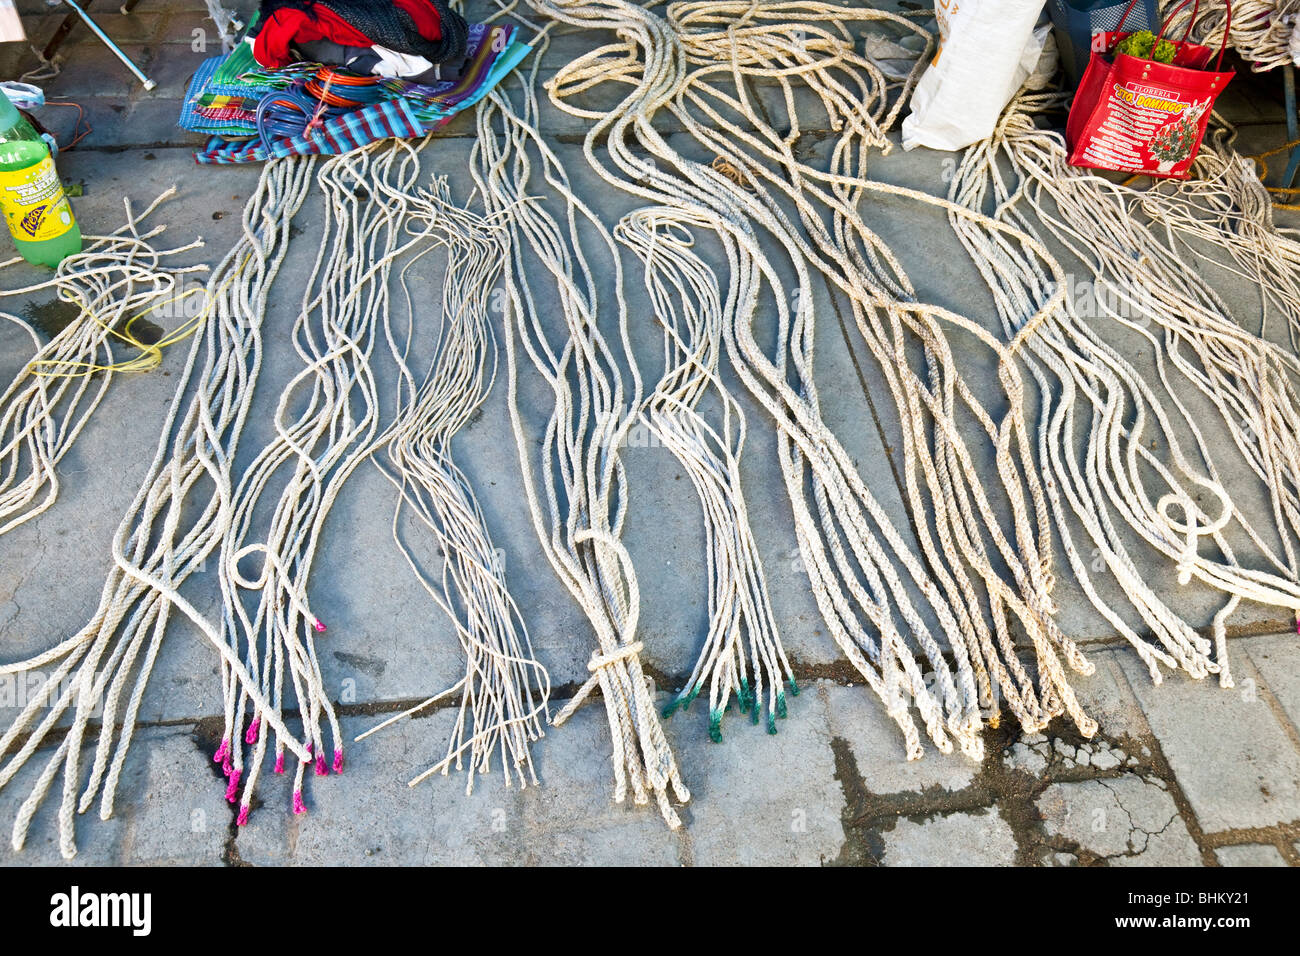 lengths of hemp rope of varying thickness laid out on paving stones for sale at Ocotlan market Oaxaca Mexico - Stock Image